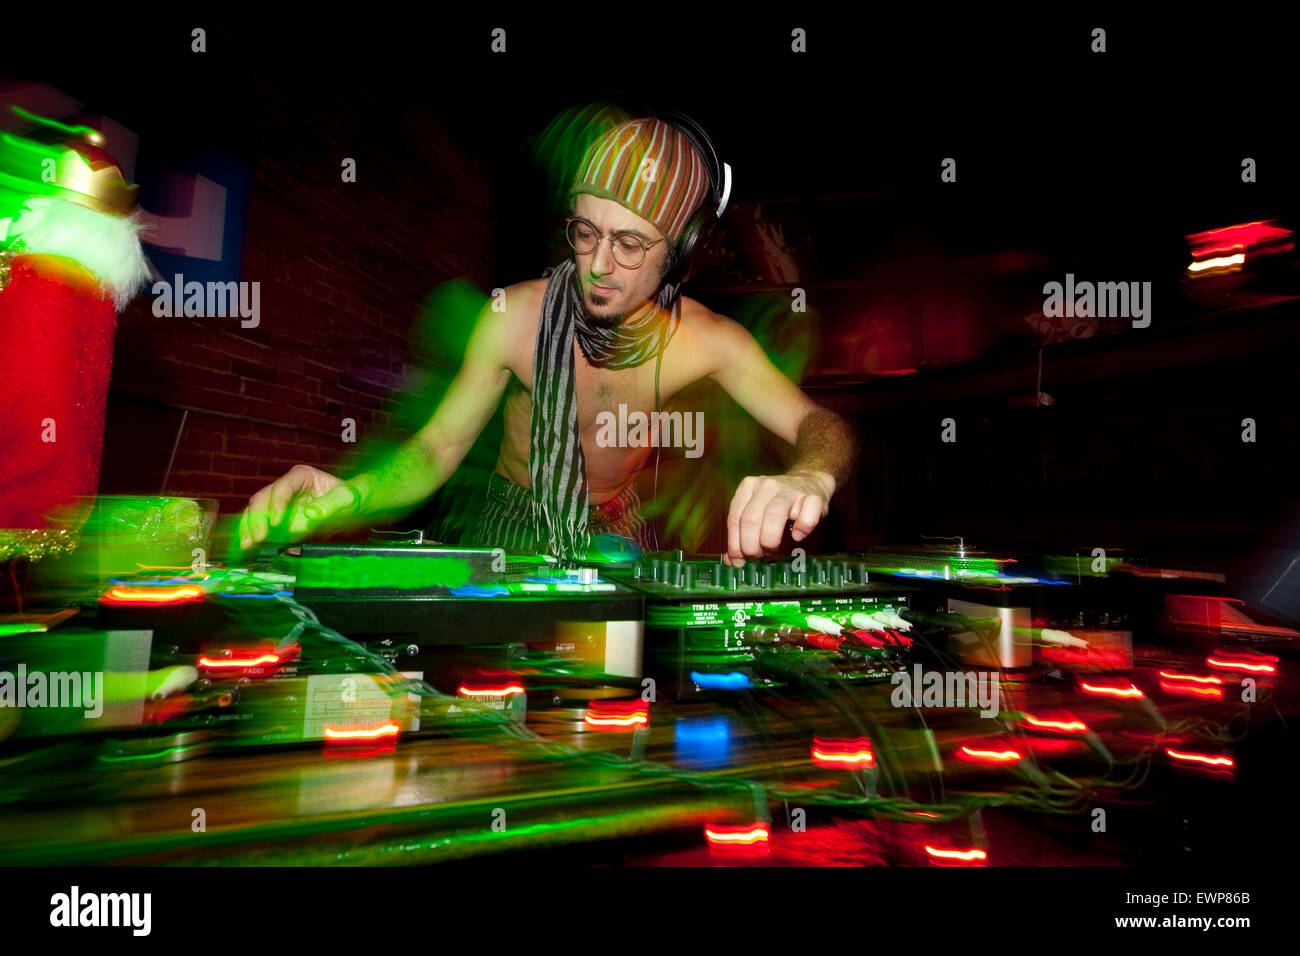 A DJ doing his thing. - Stock Image